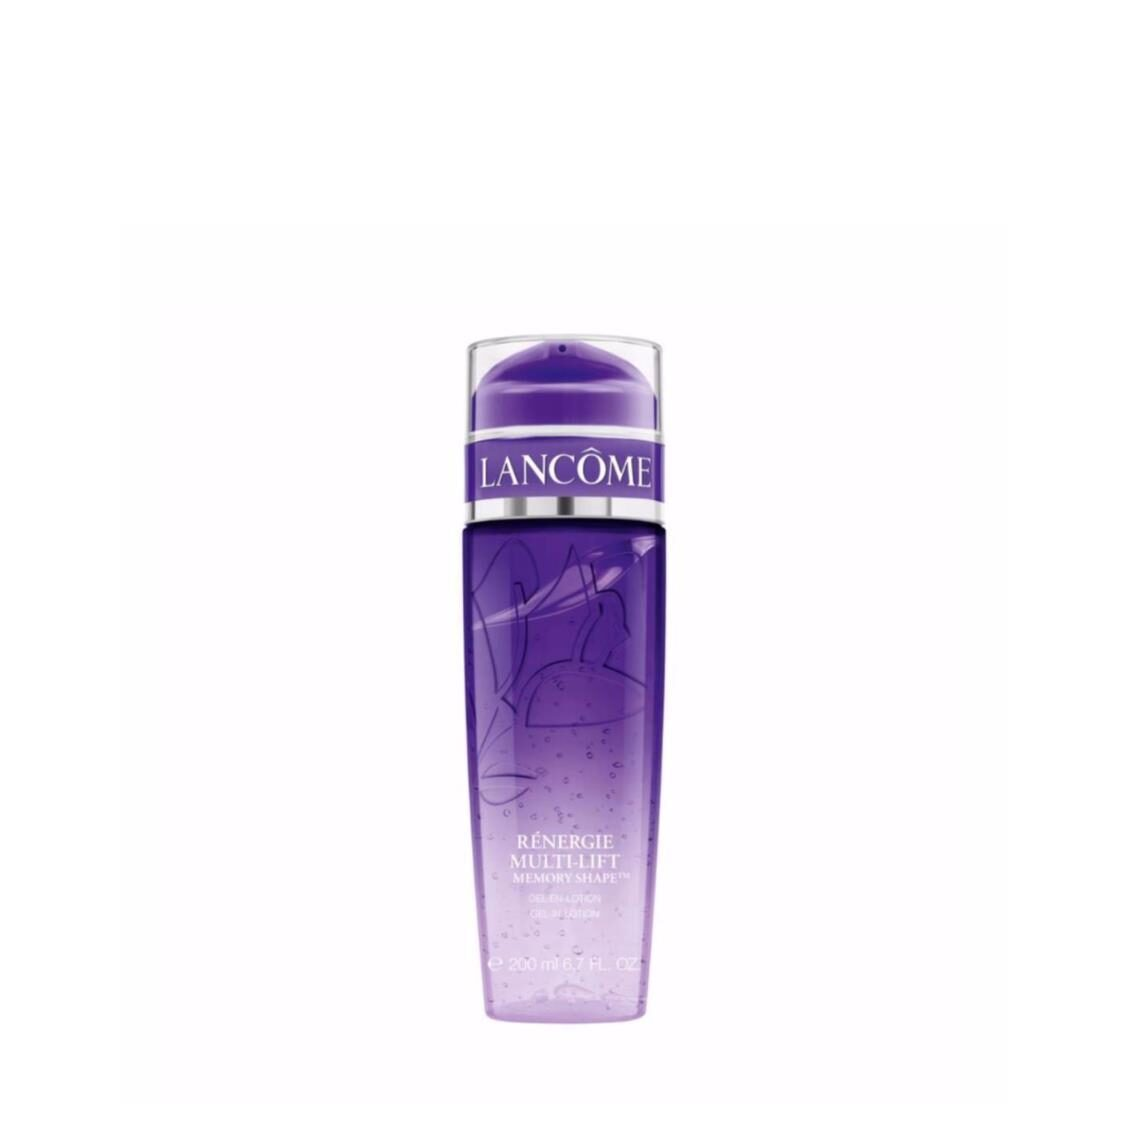 Lancome Rnergie Multi-Lift Gel-in-lotion 200ml